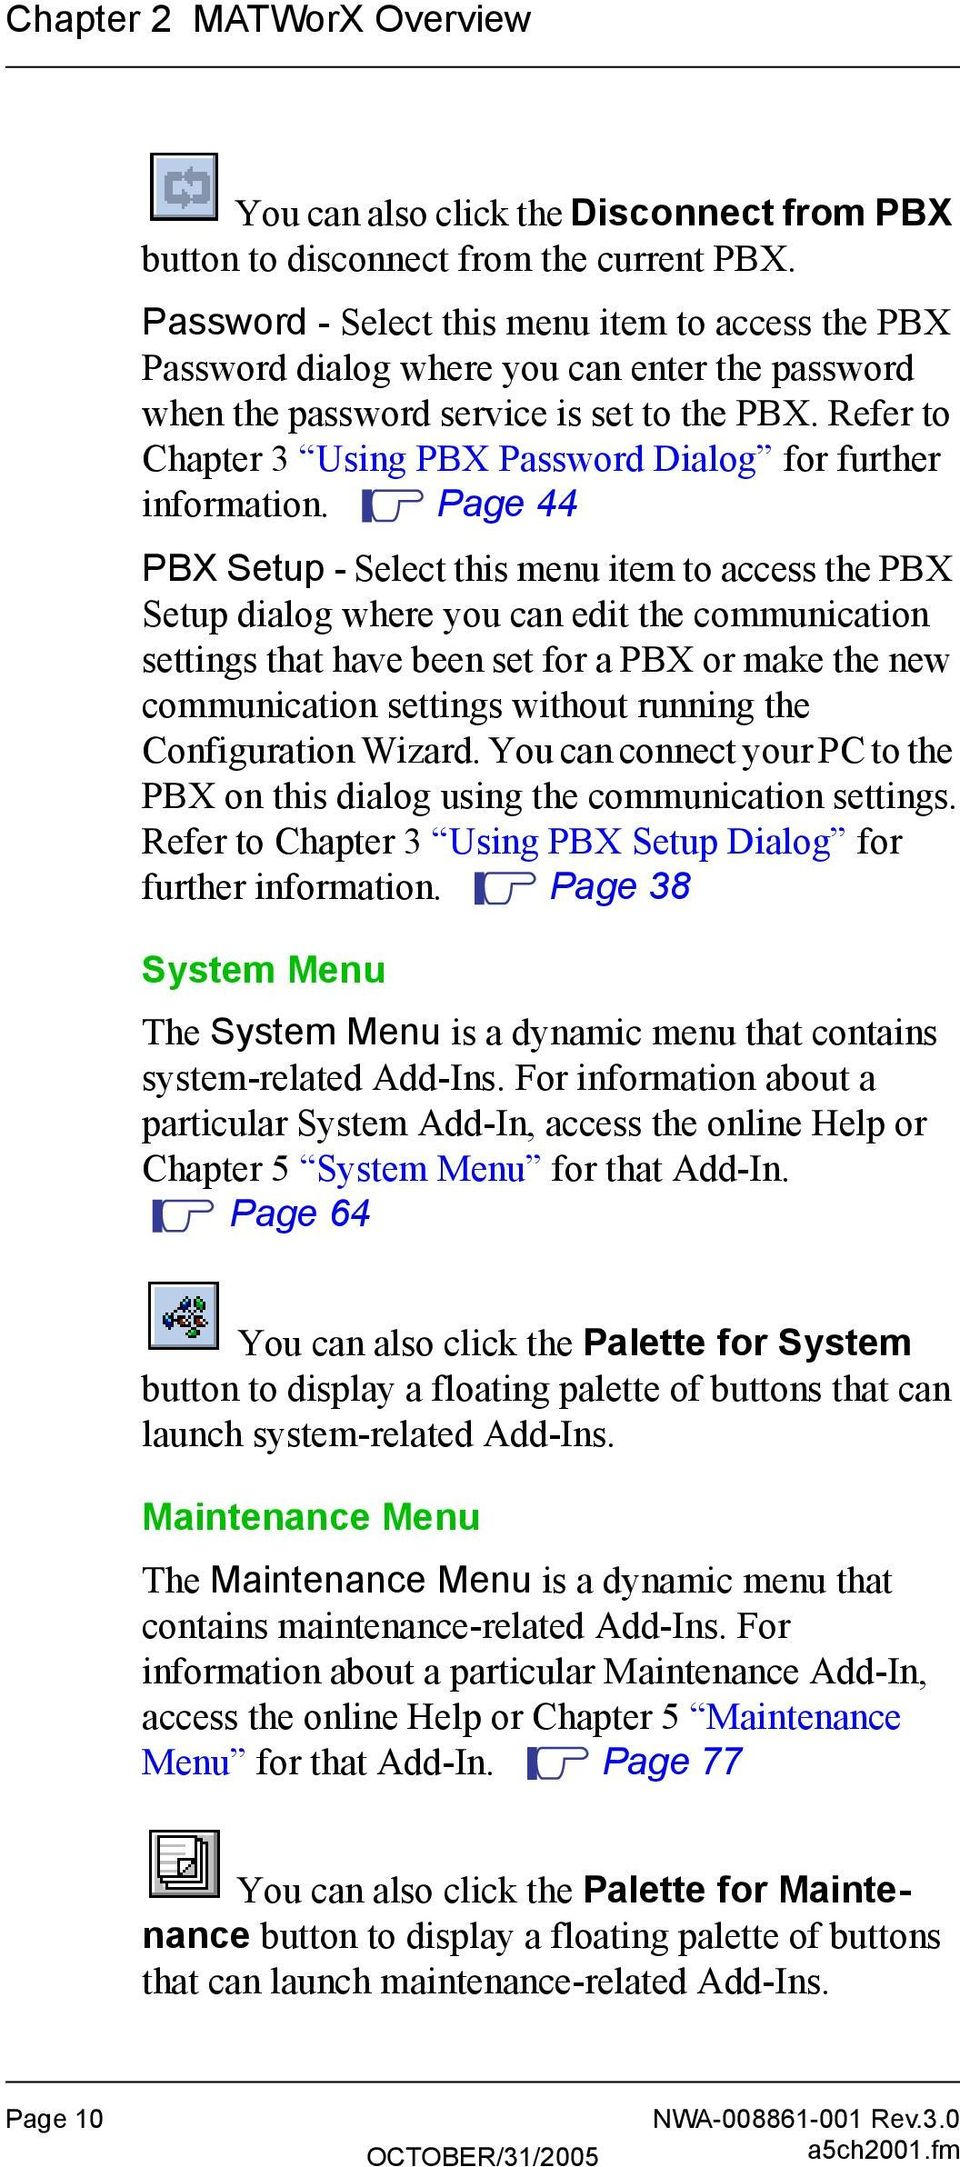 Refer to Chapter 3 Using PBX Password Dialog for further information.